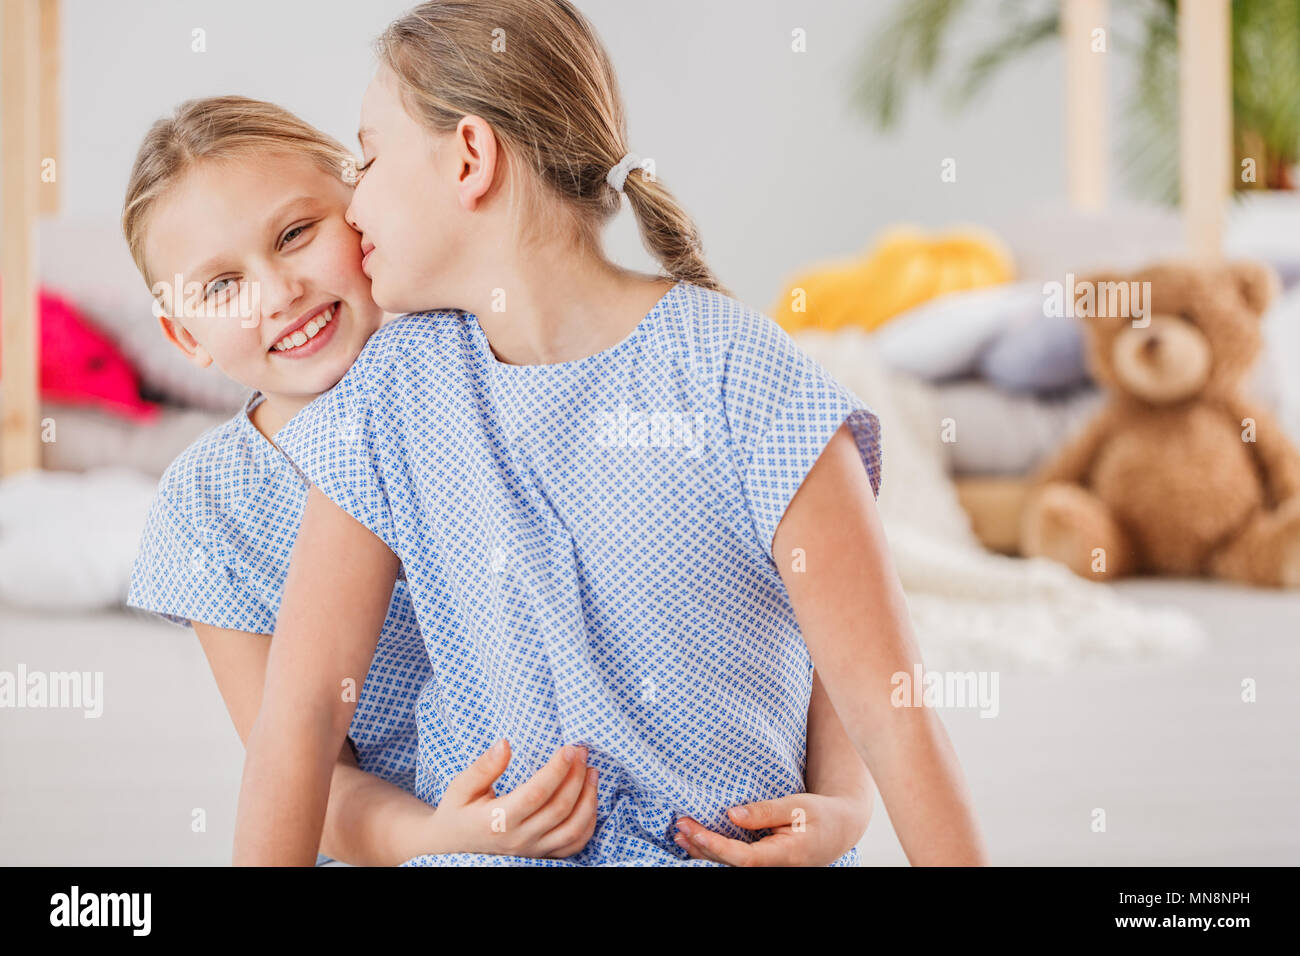 Two loving sisters wearing blue dresses hugging each other Stock Photo